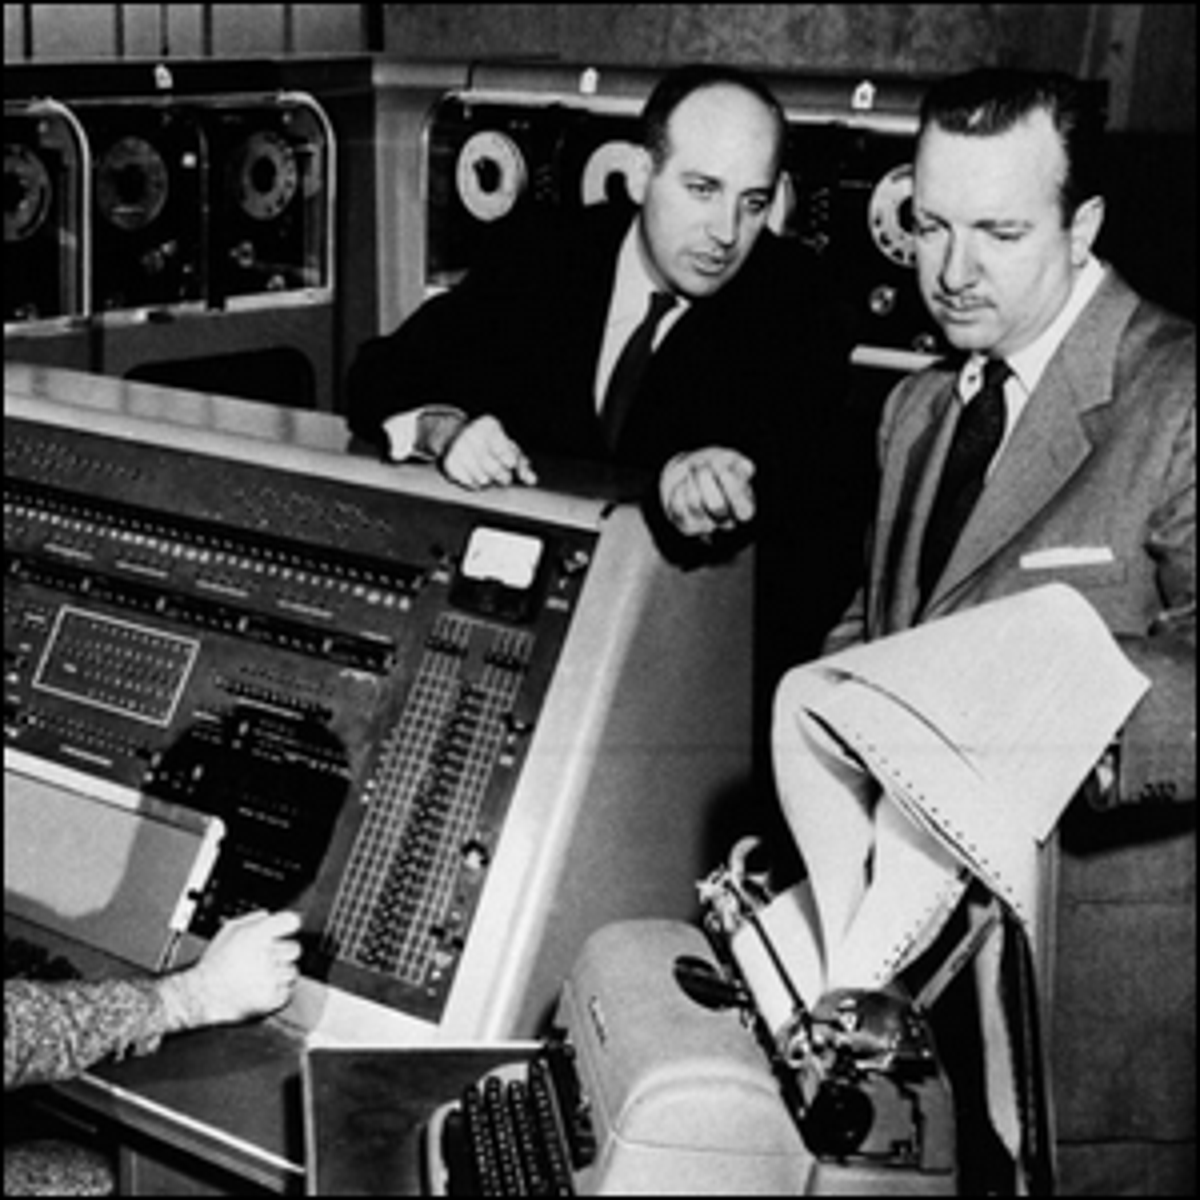 Walter Cronkite listening to Dr. J. Presper Eckert as he describes the functions of the UNIVAC I computer.